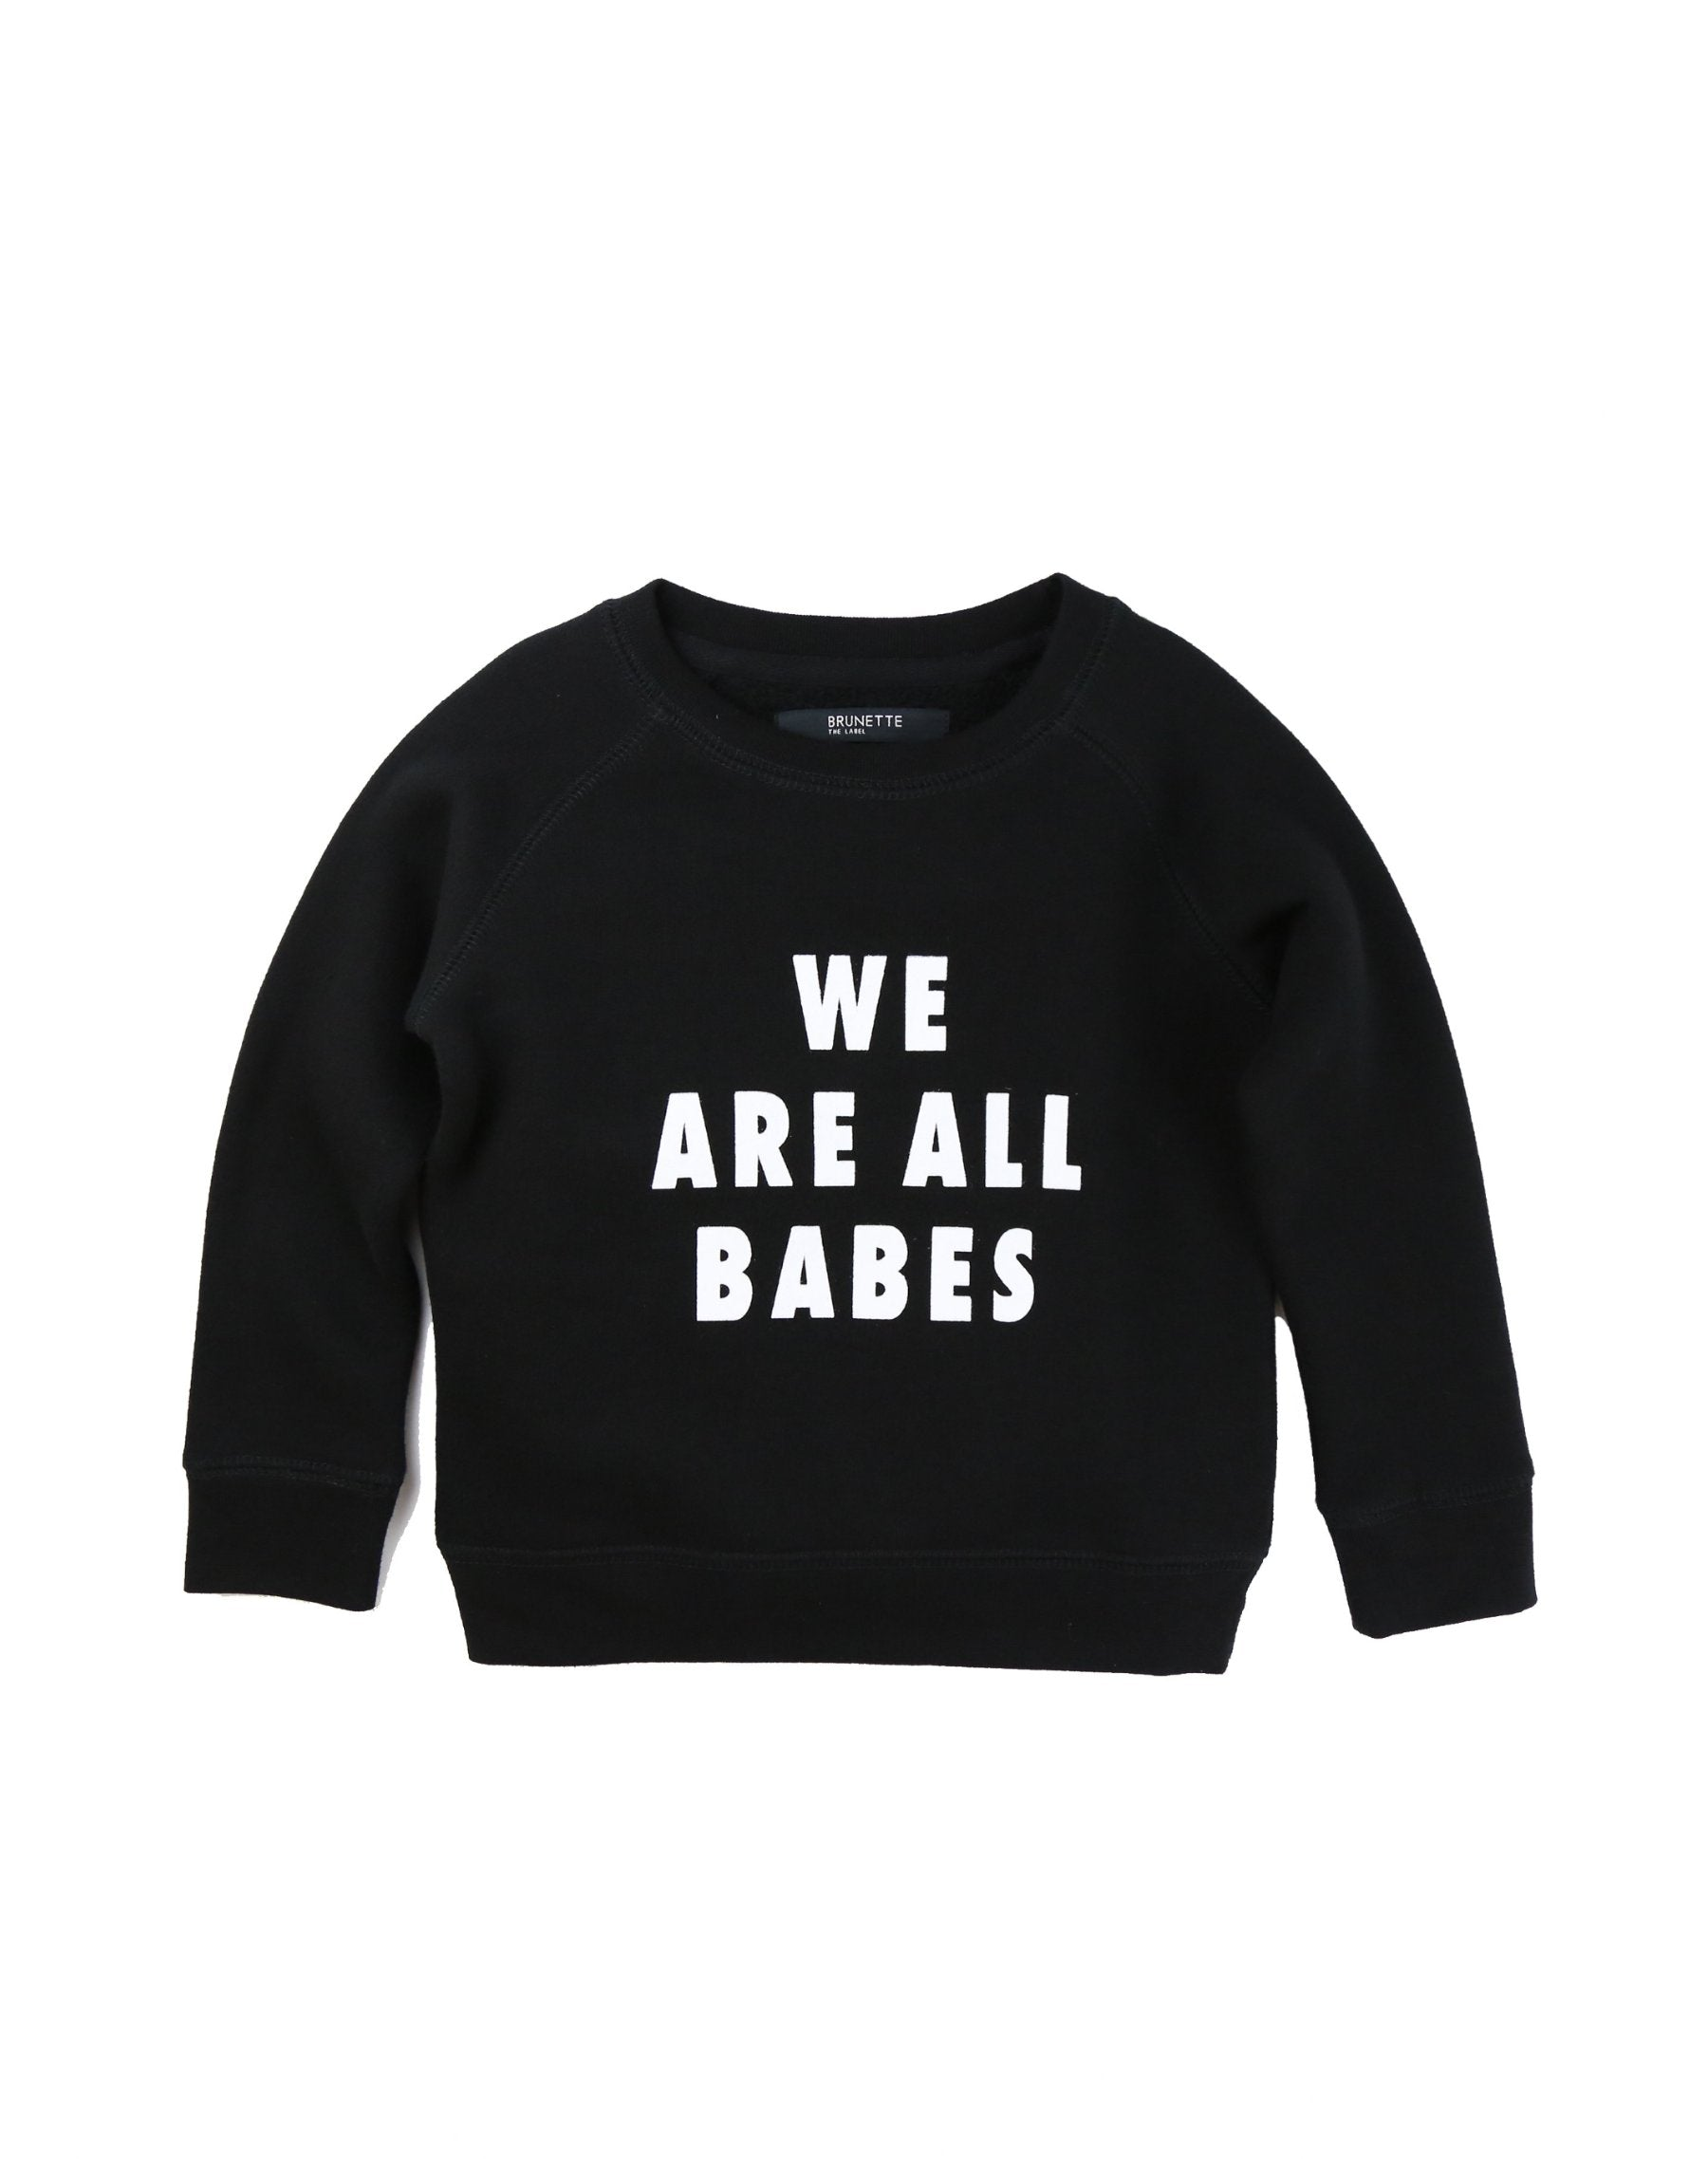 Photo of the We Are All Babes Little Babes classic crew neck sweatshirt in black by Brunette the Label.